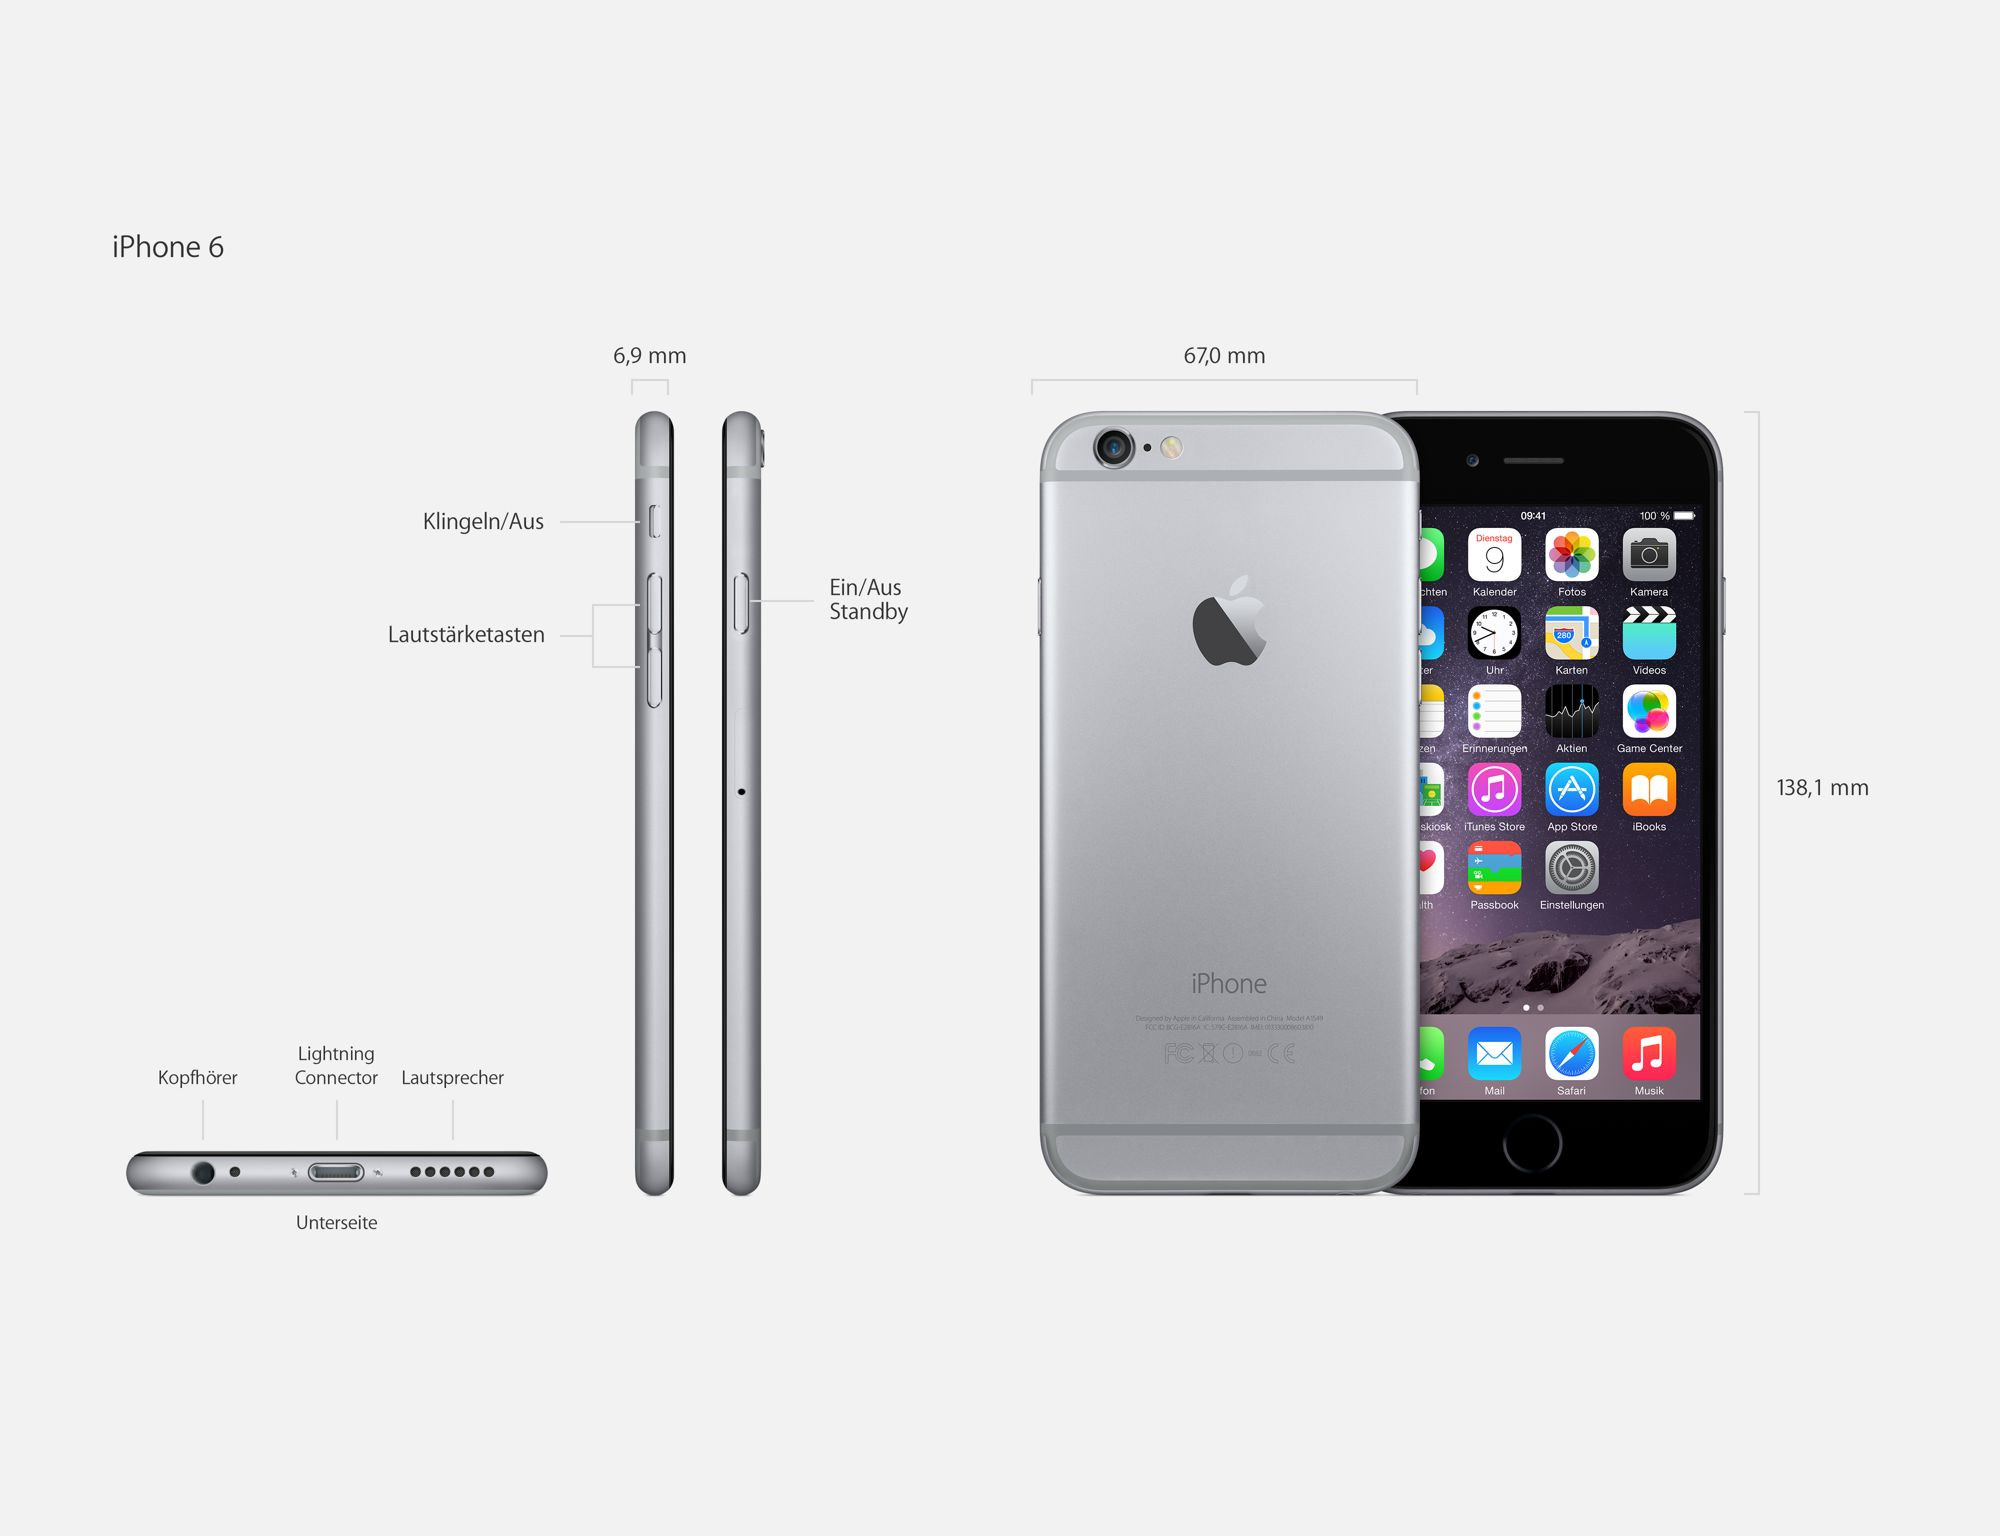 iphone6-gallery5-2014_GEO_EMEA_LANG_DE